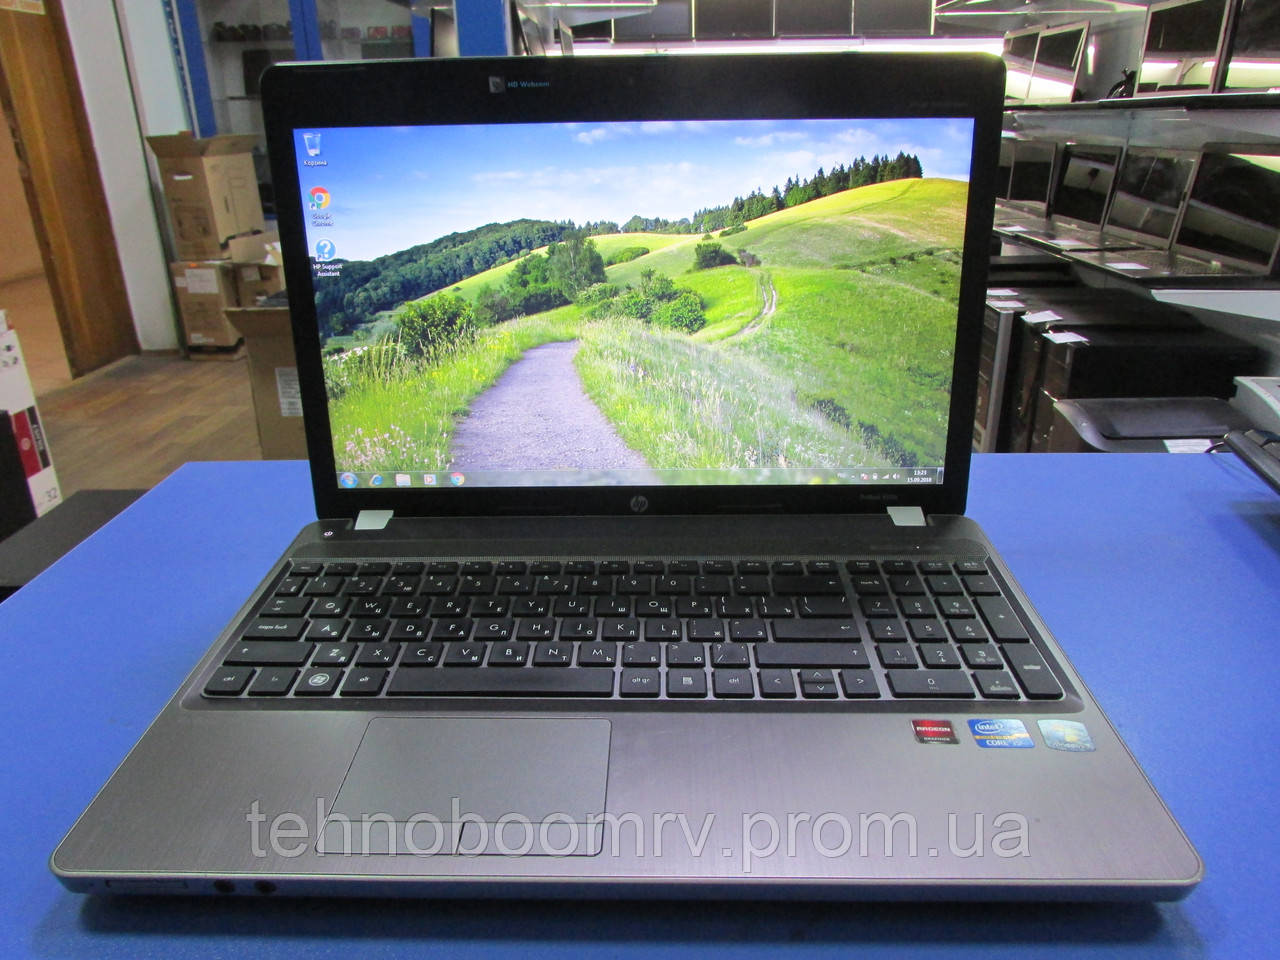 HP ProBook 4530s - Intel i5-2450M 3.1GHz/HDD 750GB/DDR3 4GB